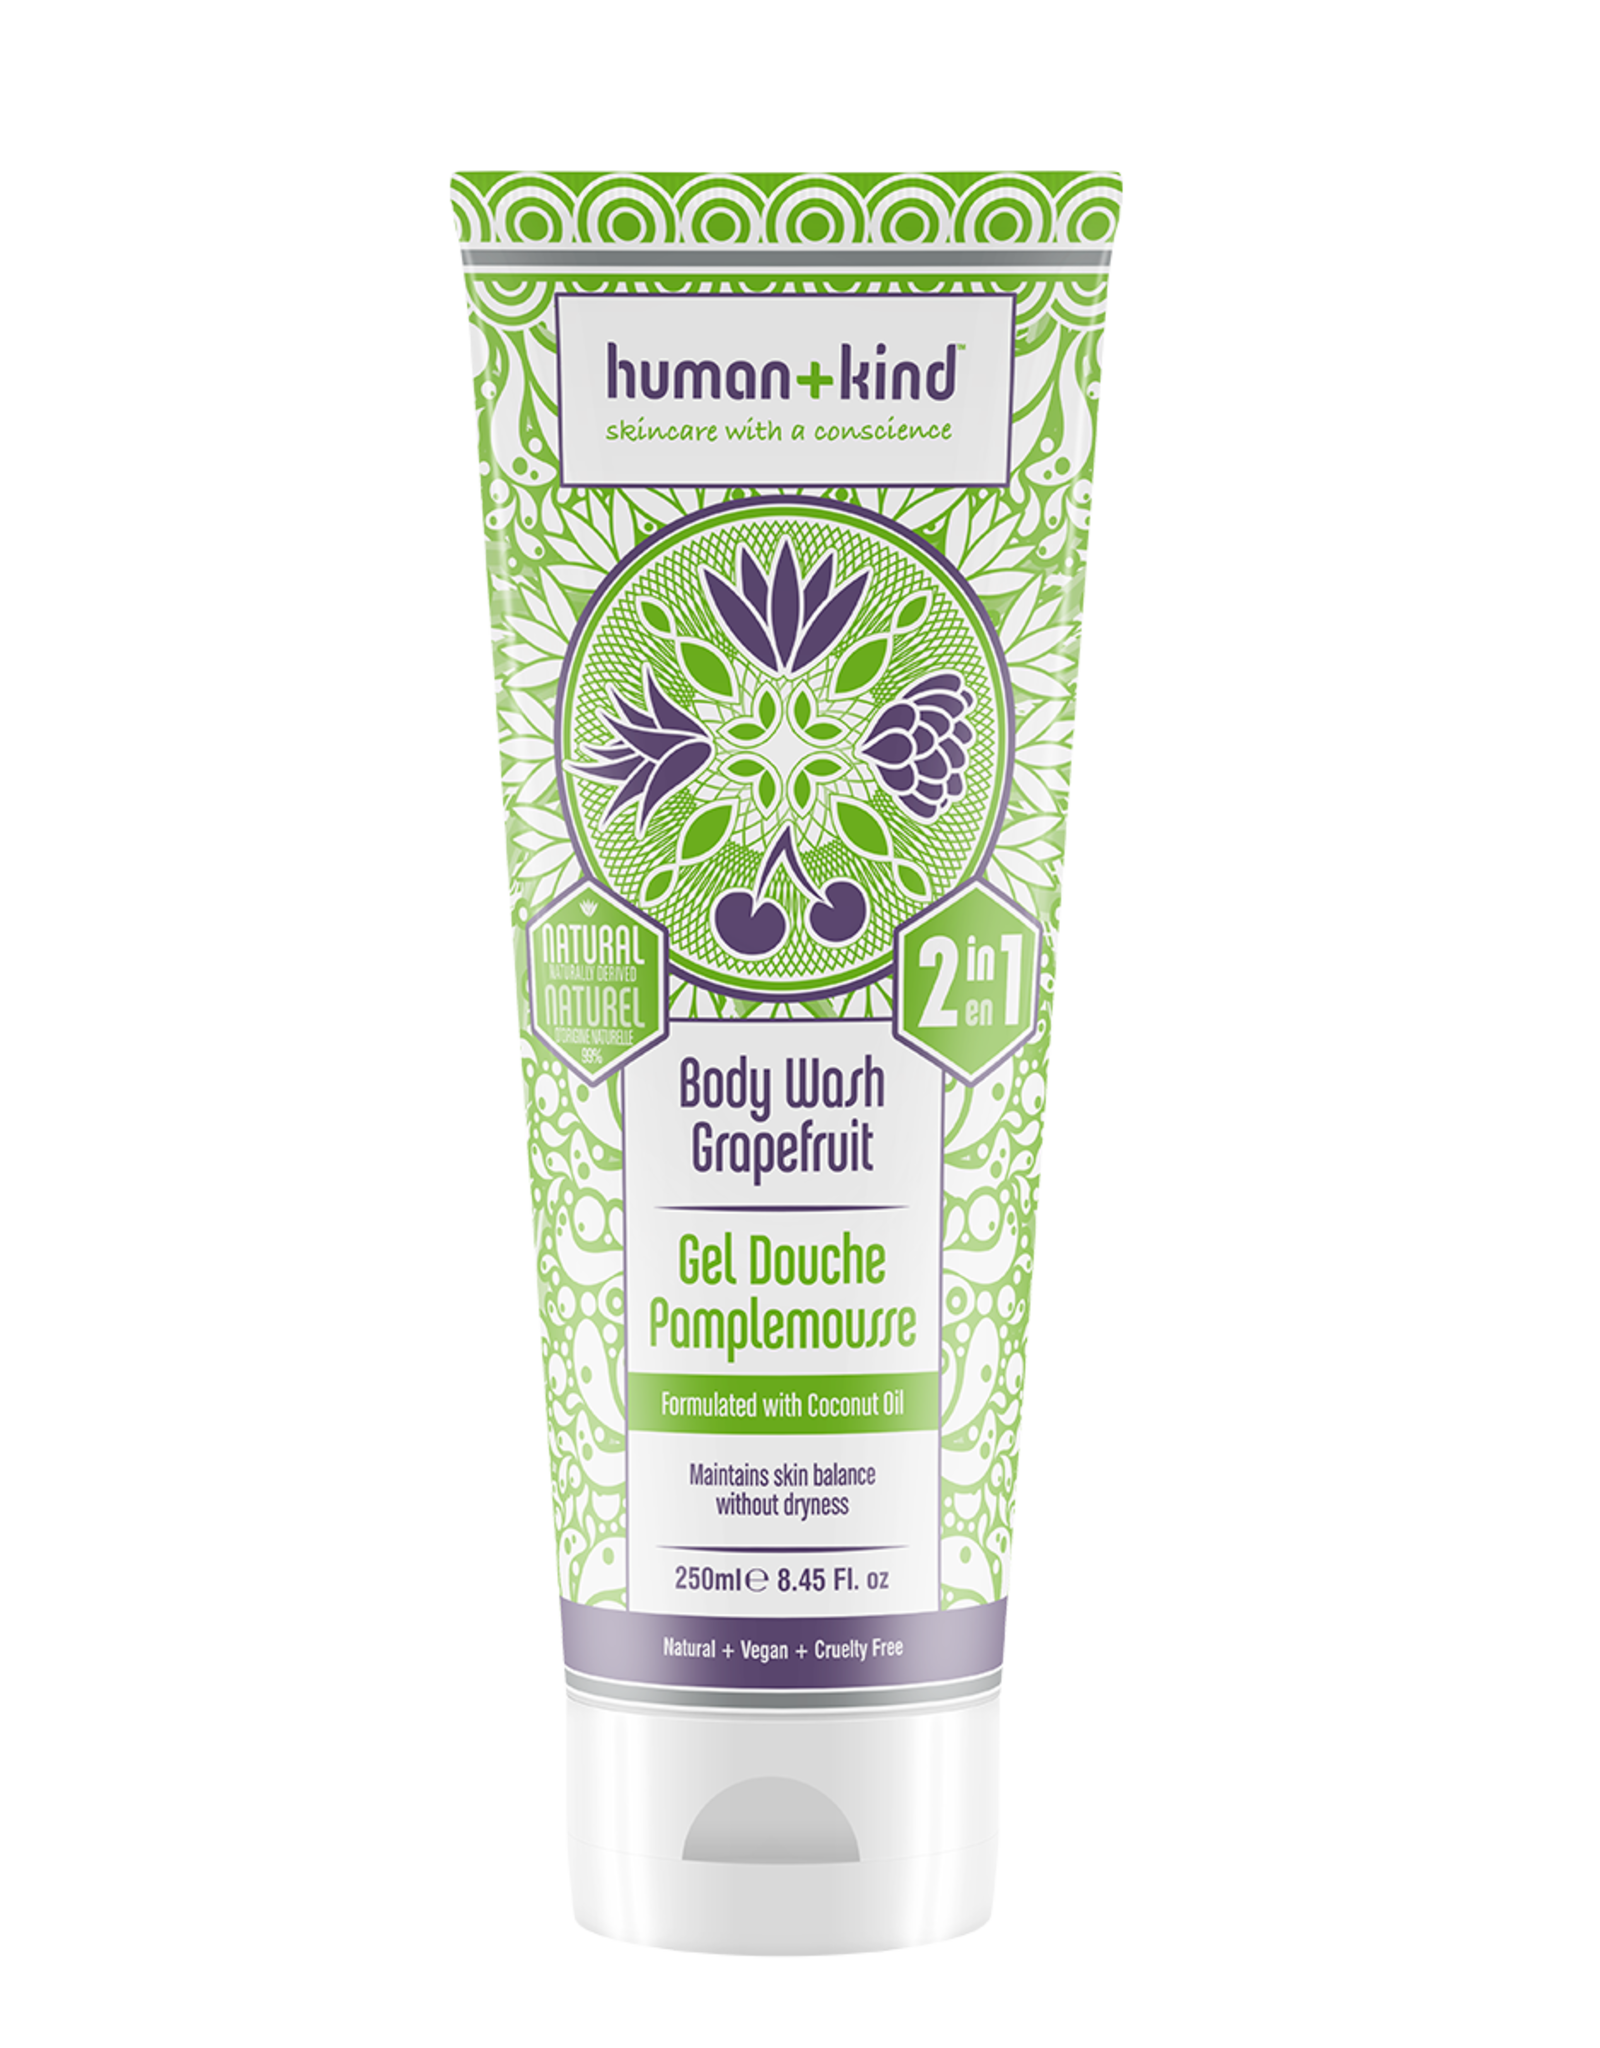 human+kind 2 in 1 Bodywash Grapefruit Vegan 250ml